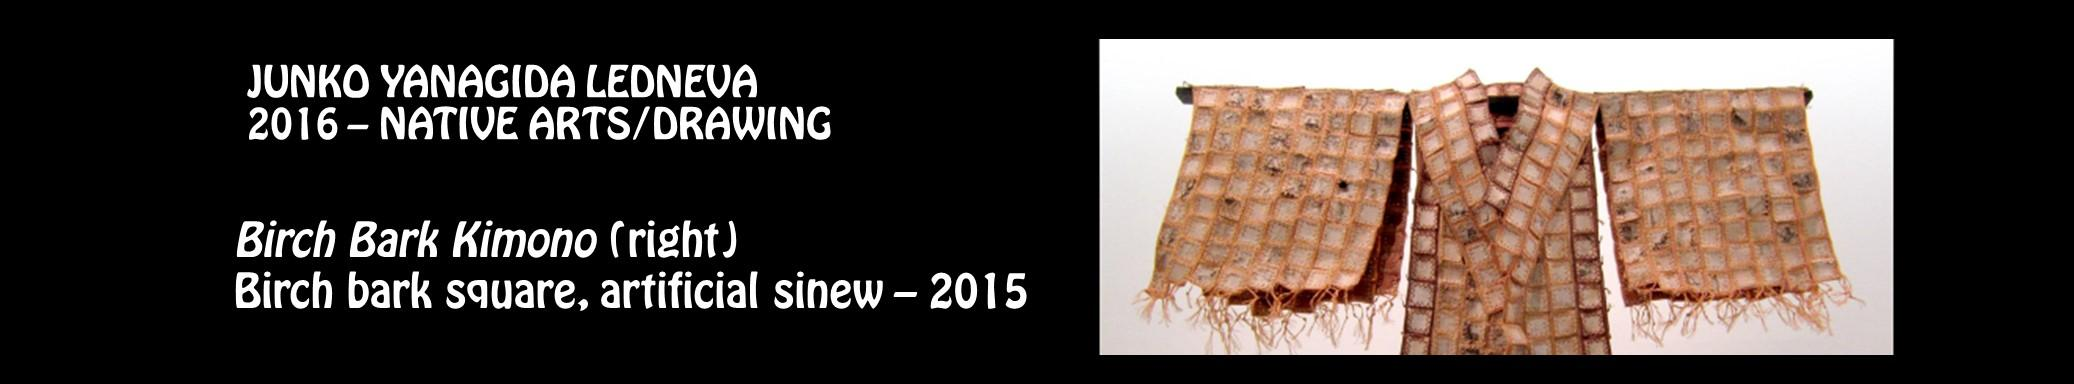 Junko Yanagida Ledneva 2016 - Native arts, drawing - Birch Bark Kimono, right - birch bark square, artificial sinew - 2015